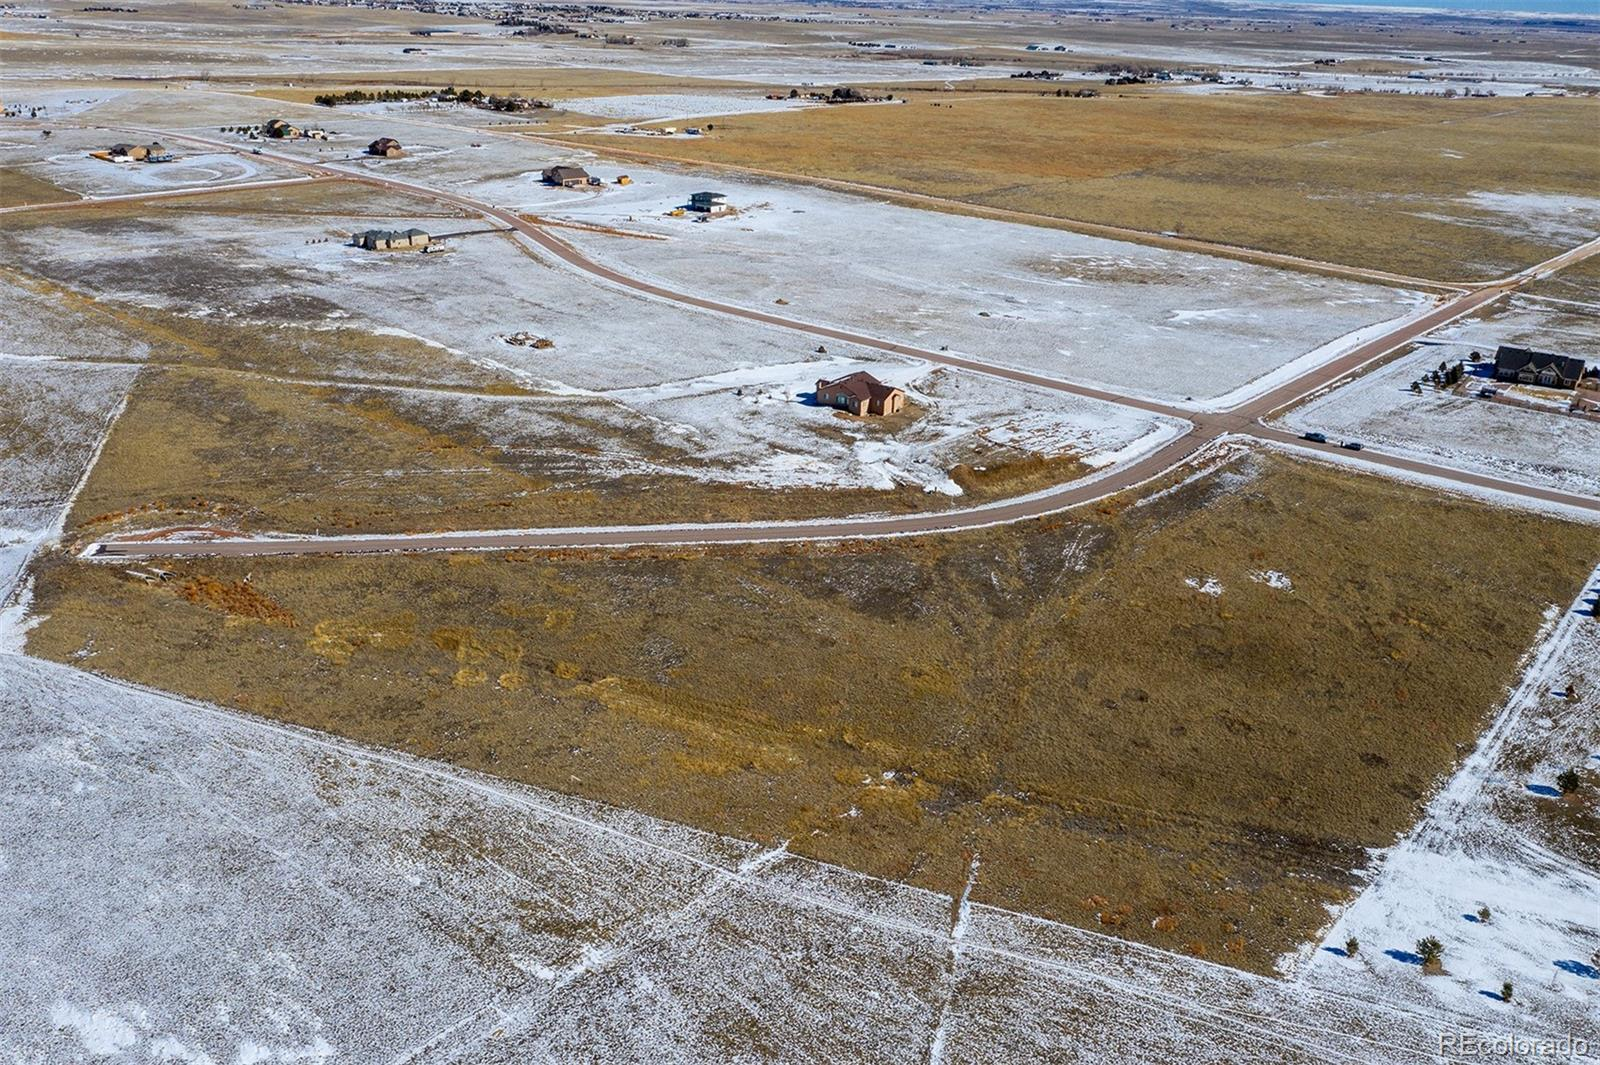 MLS# 7950153 - 6 - 1820 Terri Lee Drive, Peyton, CO 80831